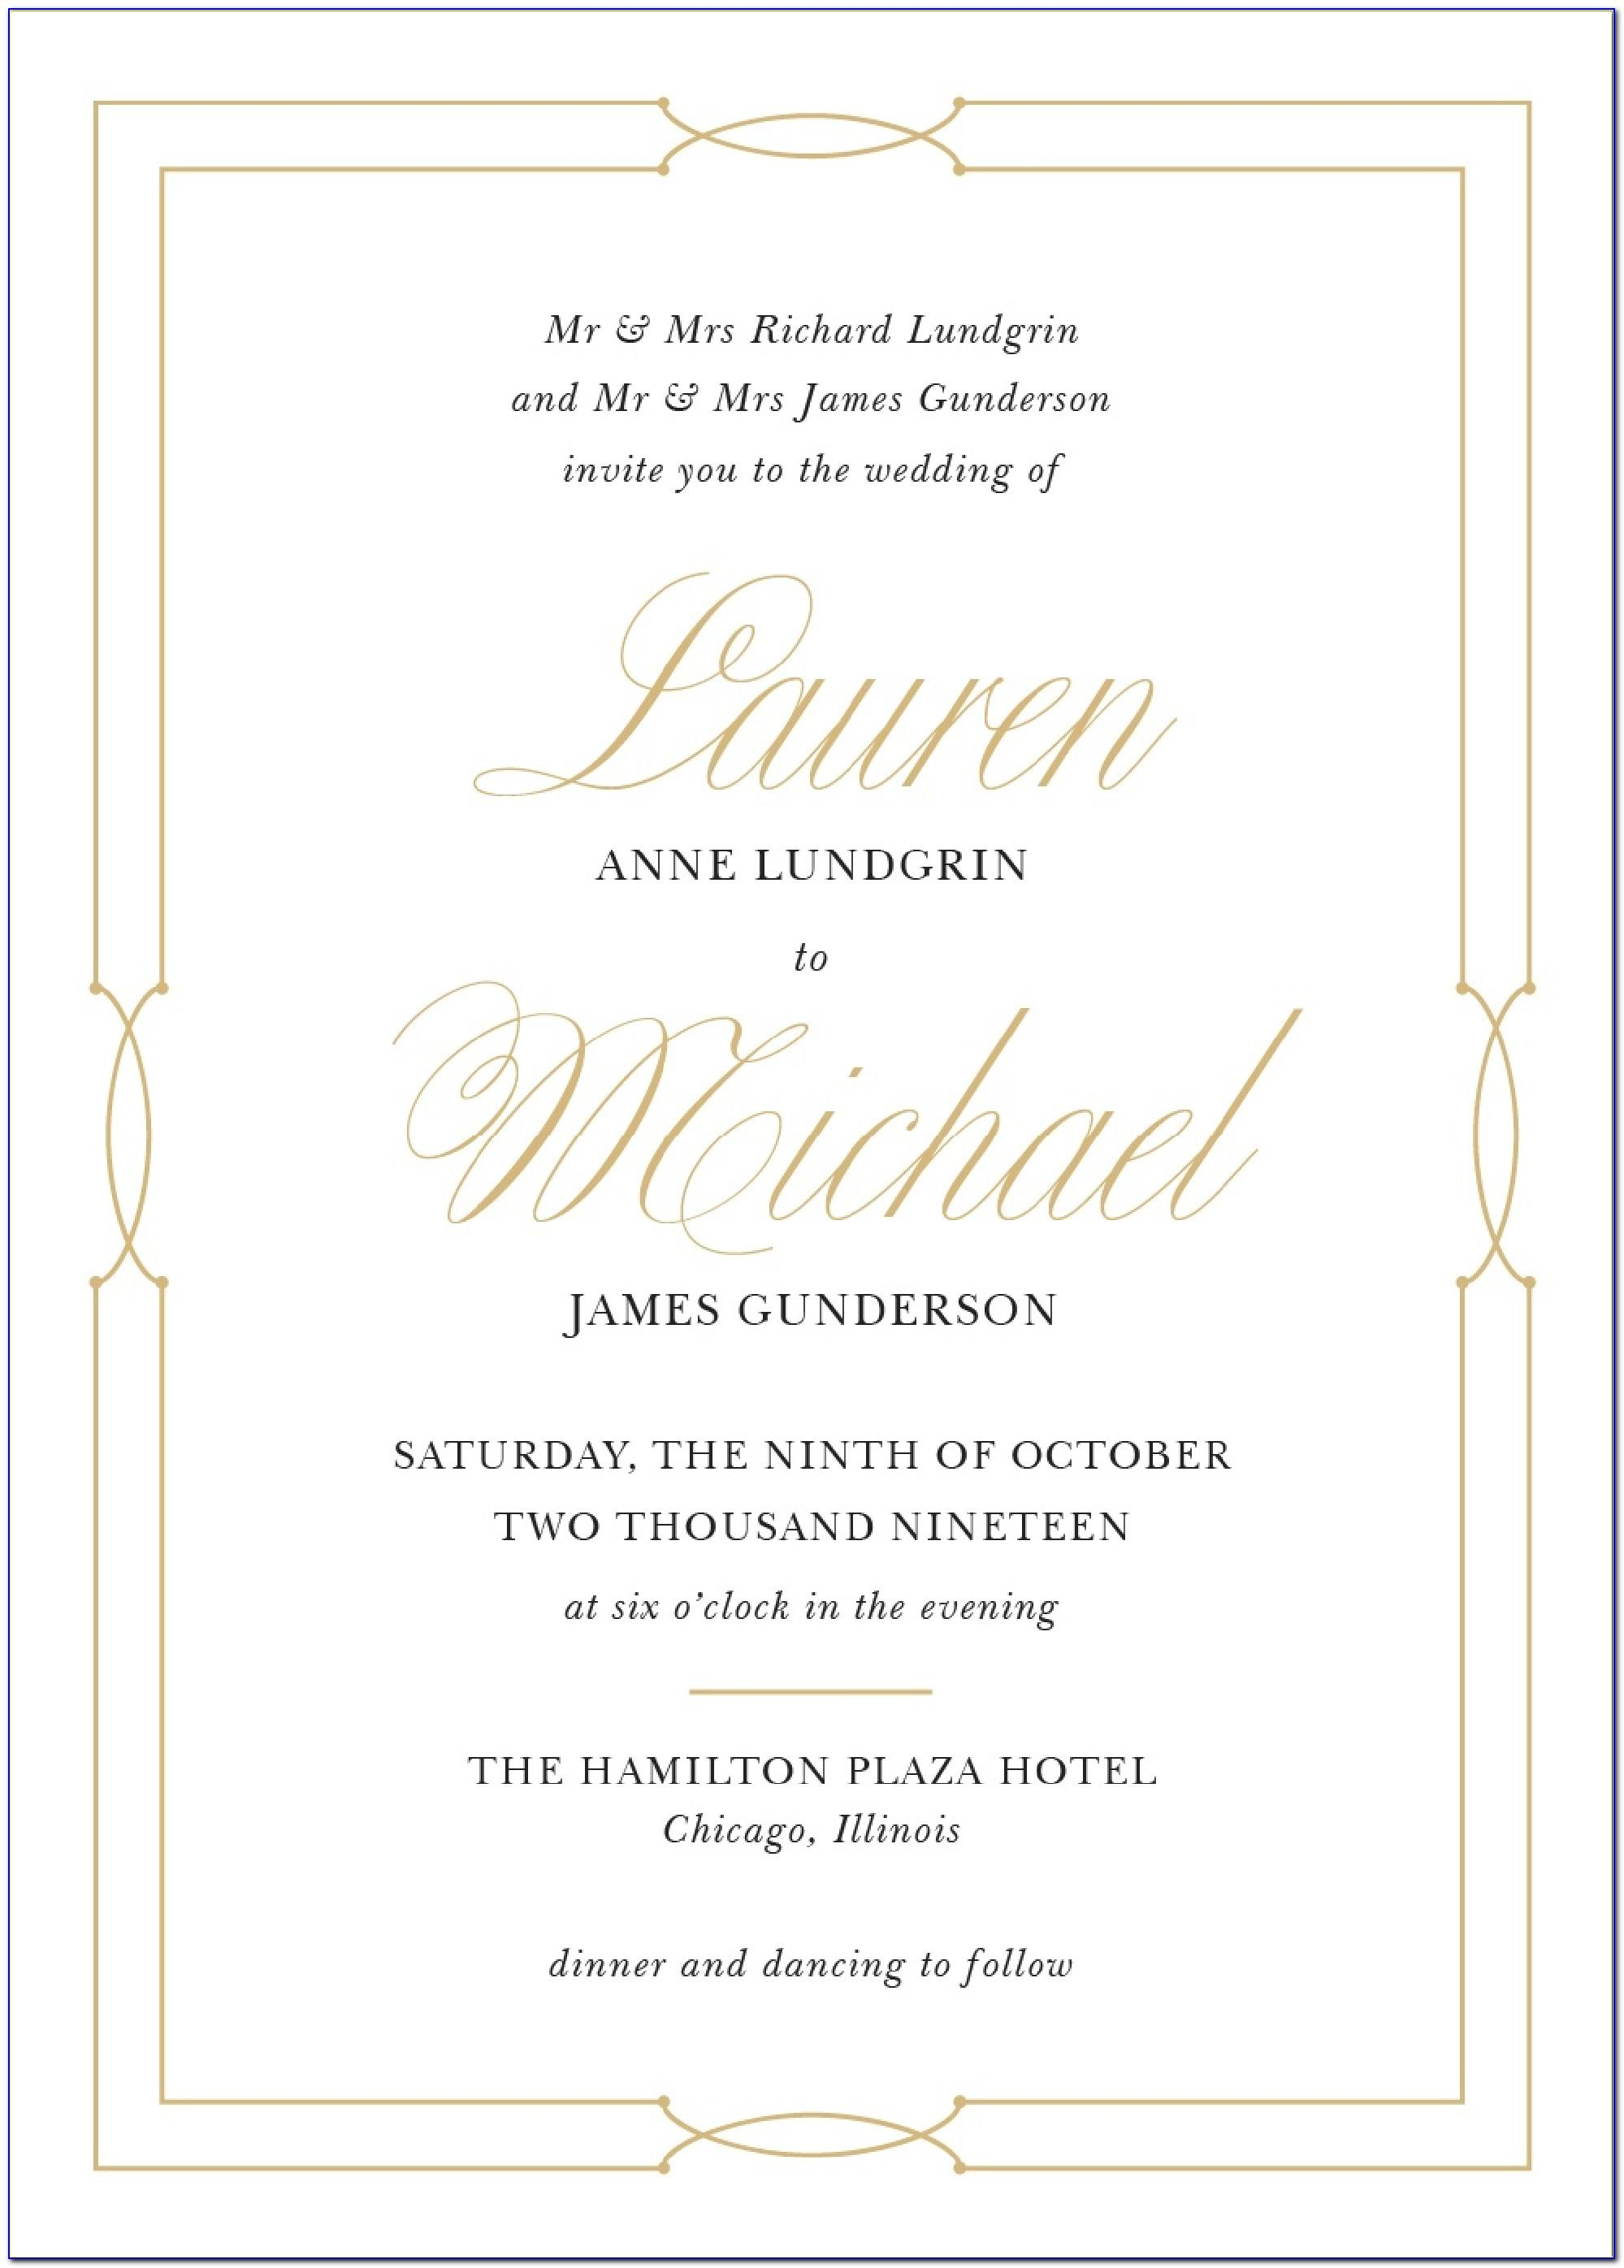 Sample Wedding Invitation Format With Entourage